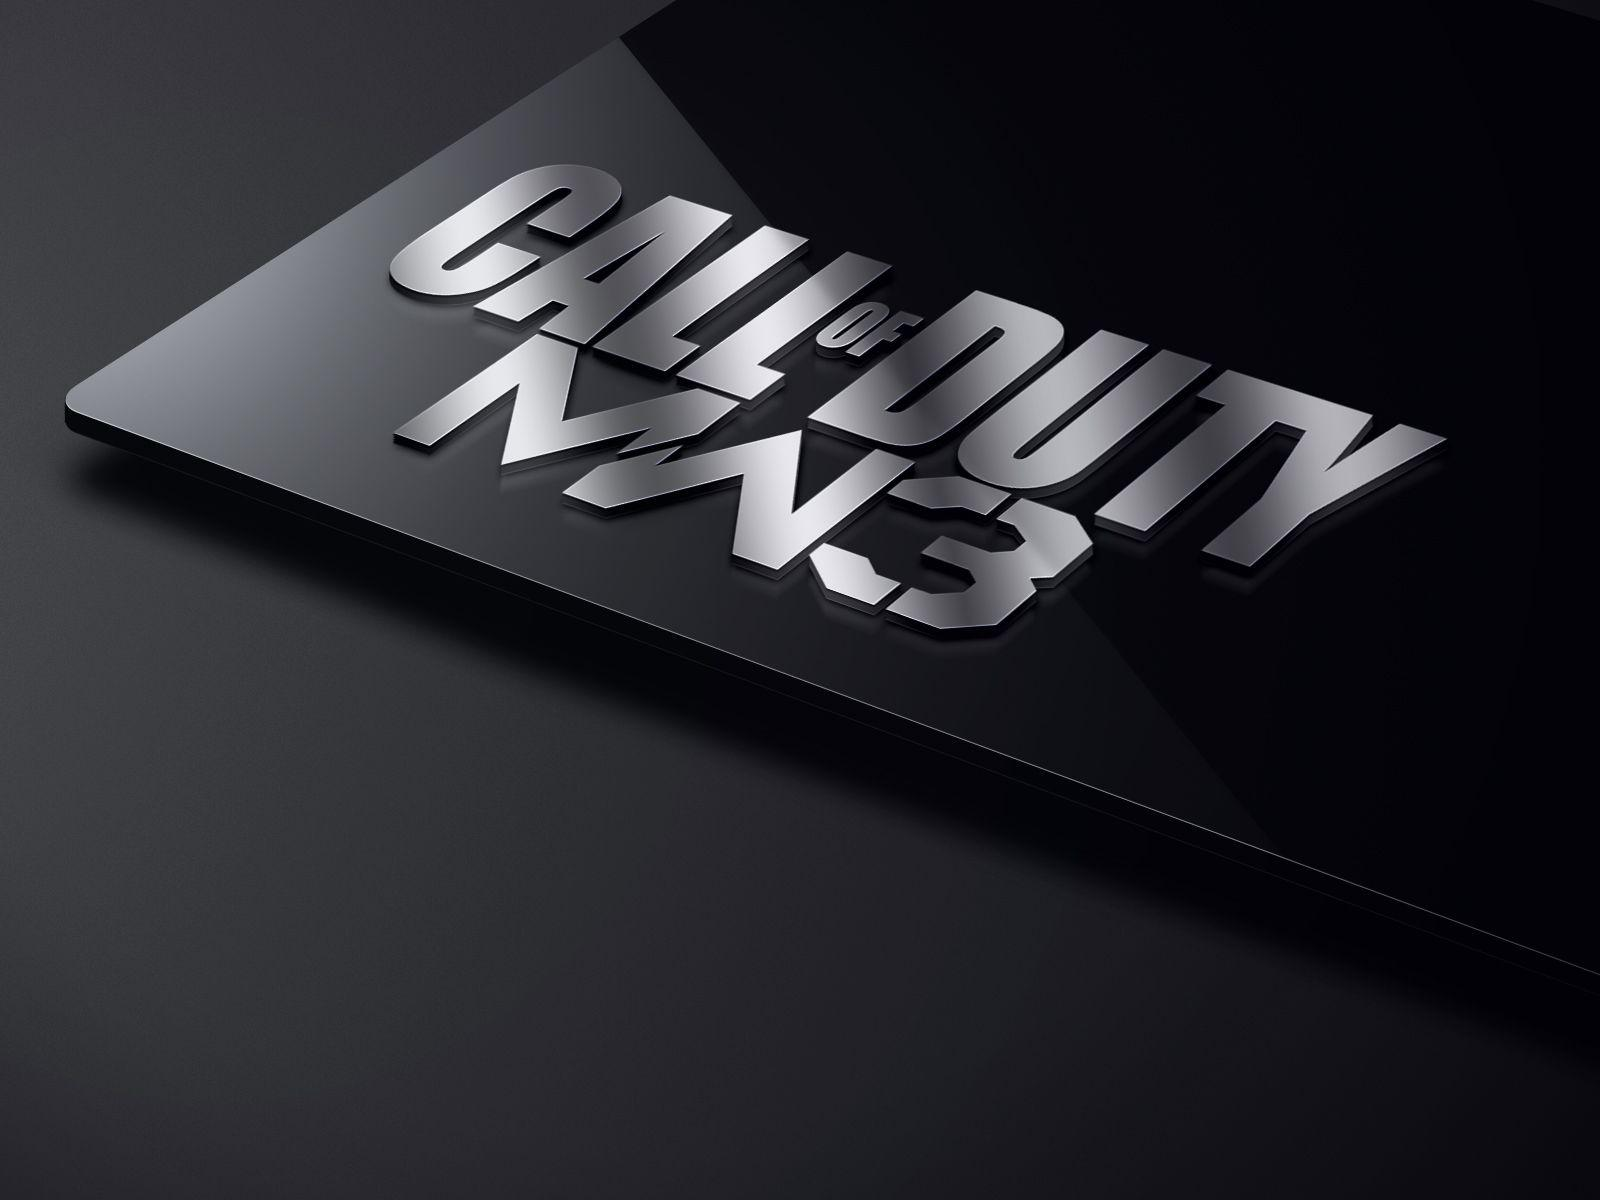 Call Of Duty Mw3 Wallpapers